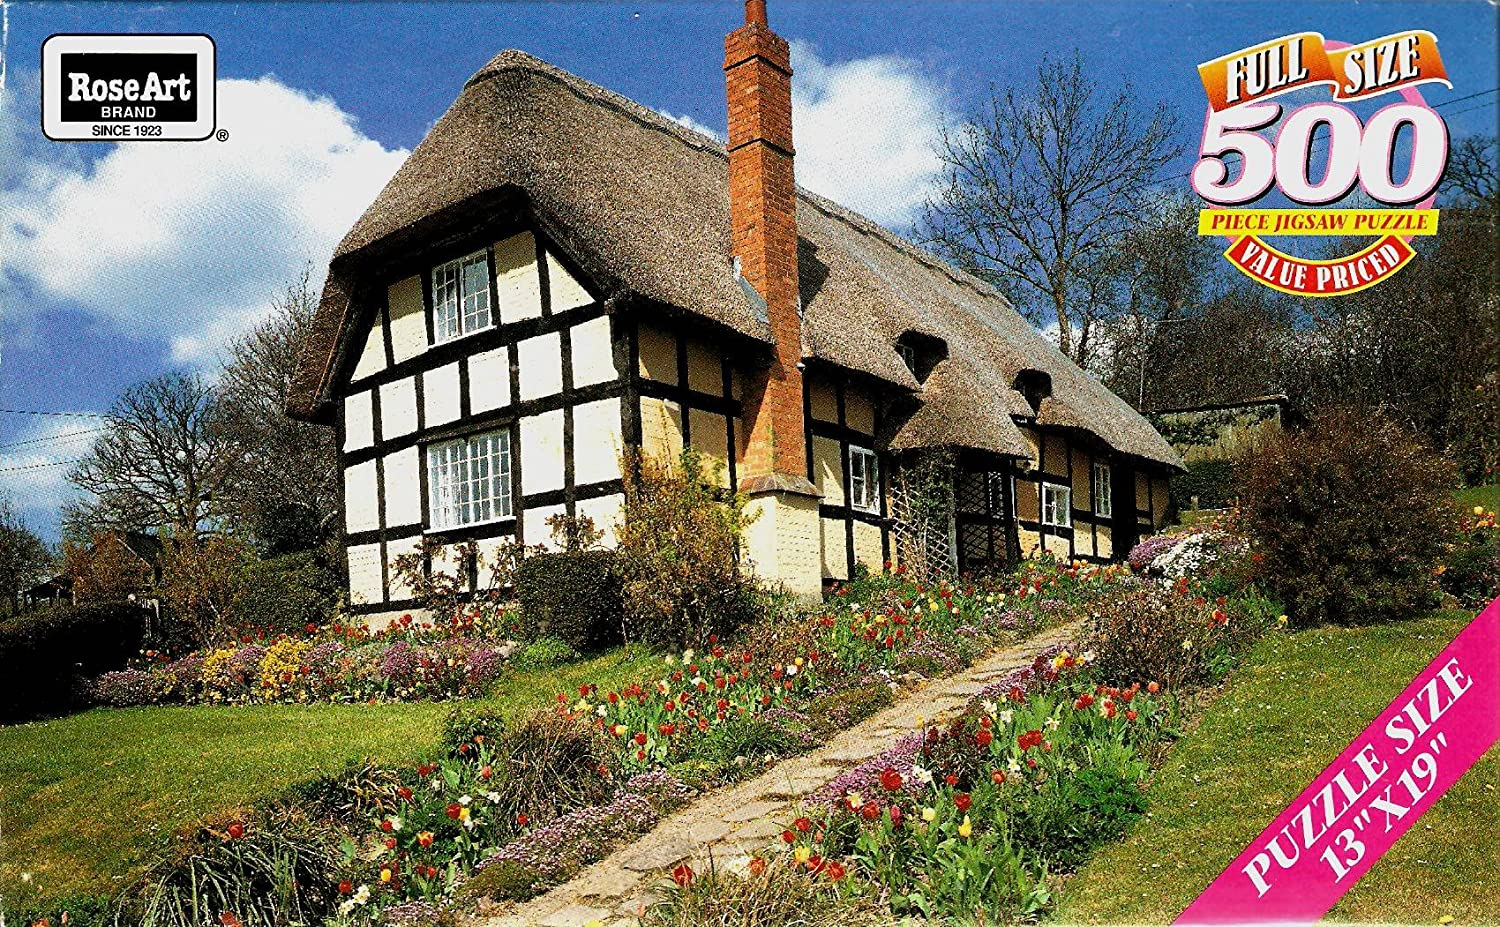 Cottage At Eastnor 500 Piece Jigsaw Puzzle by pink Art